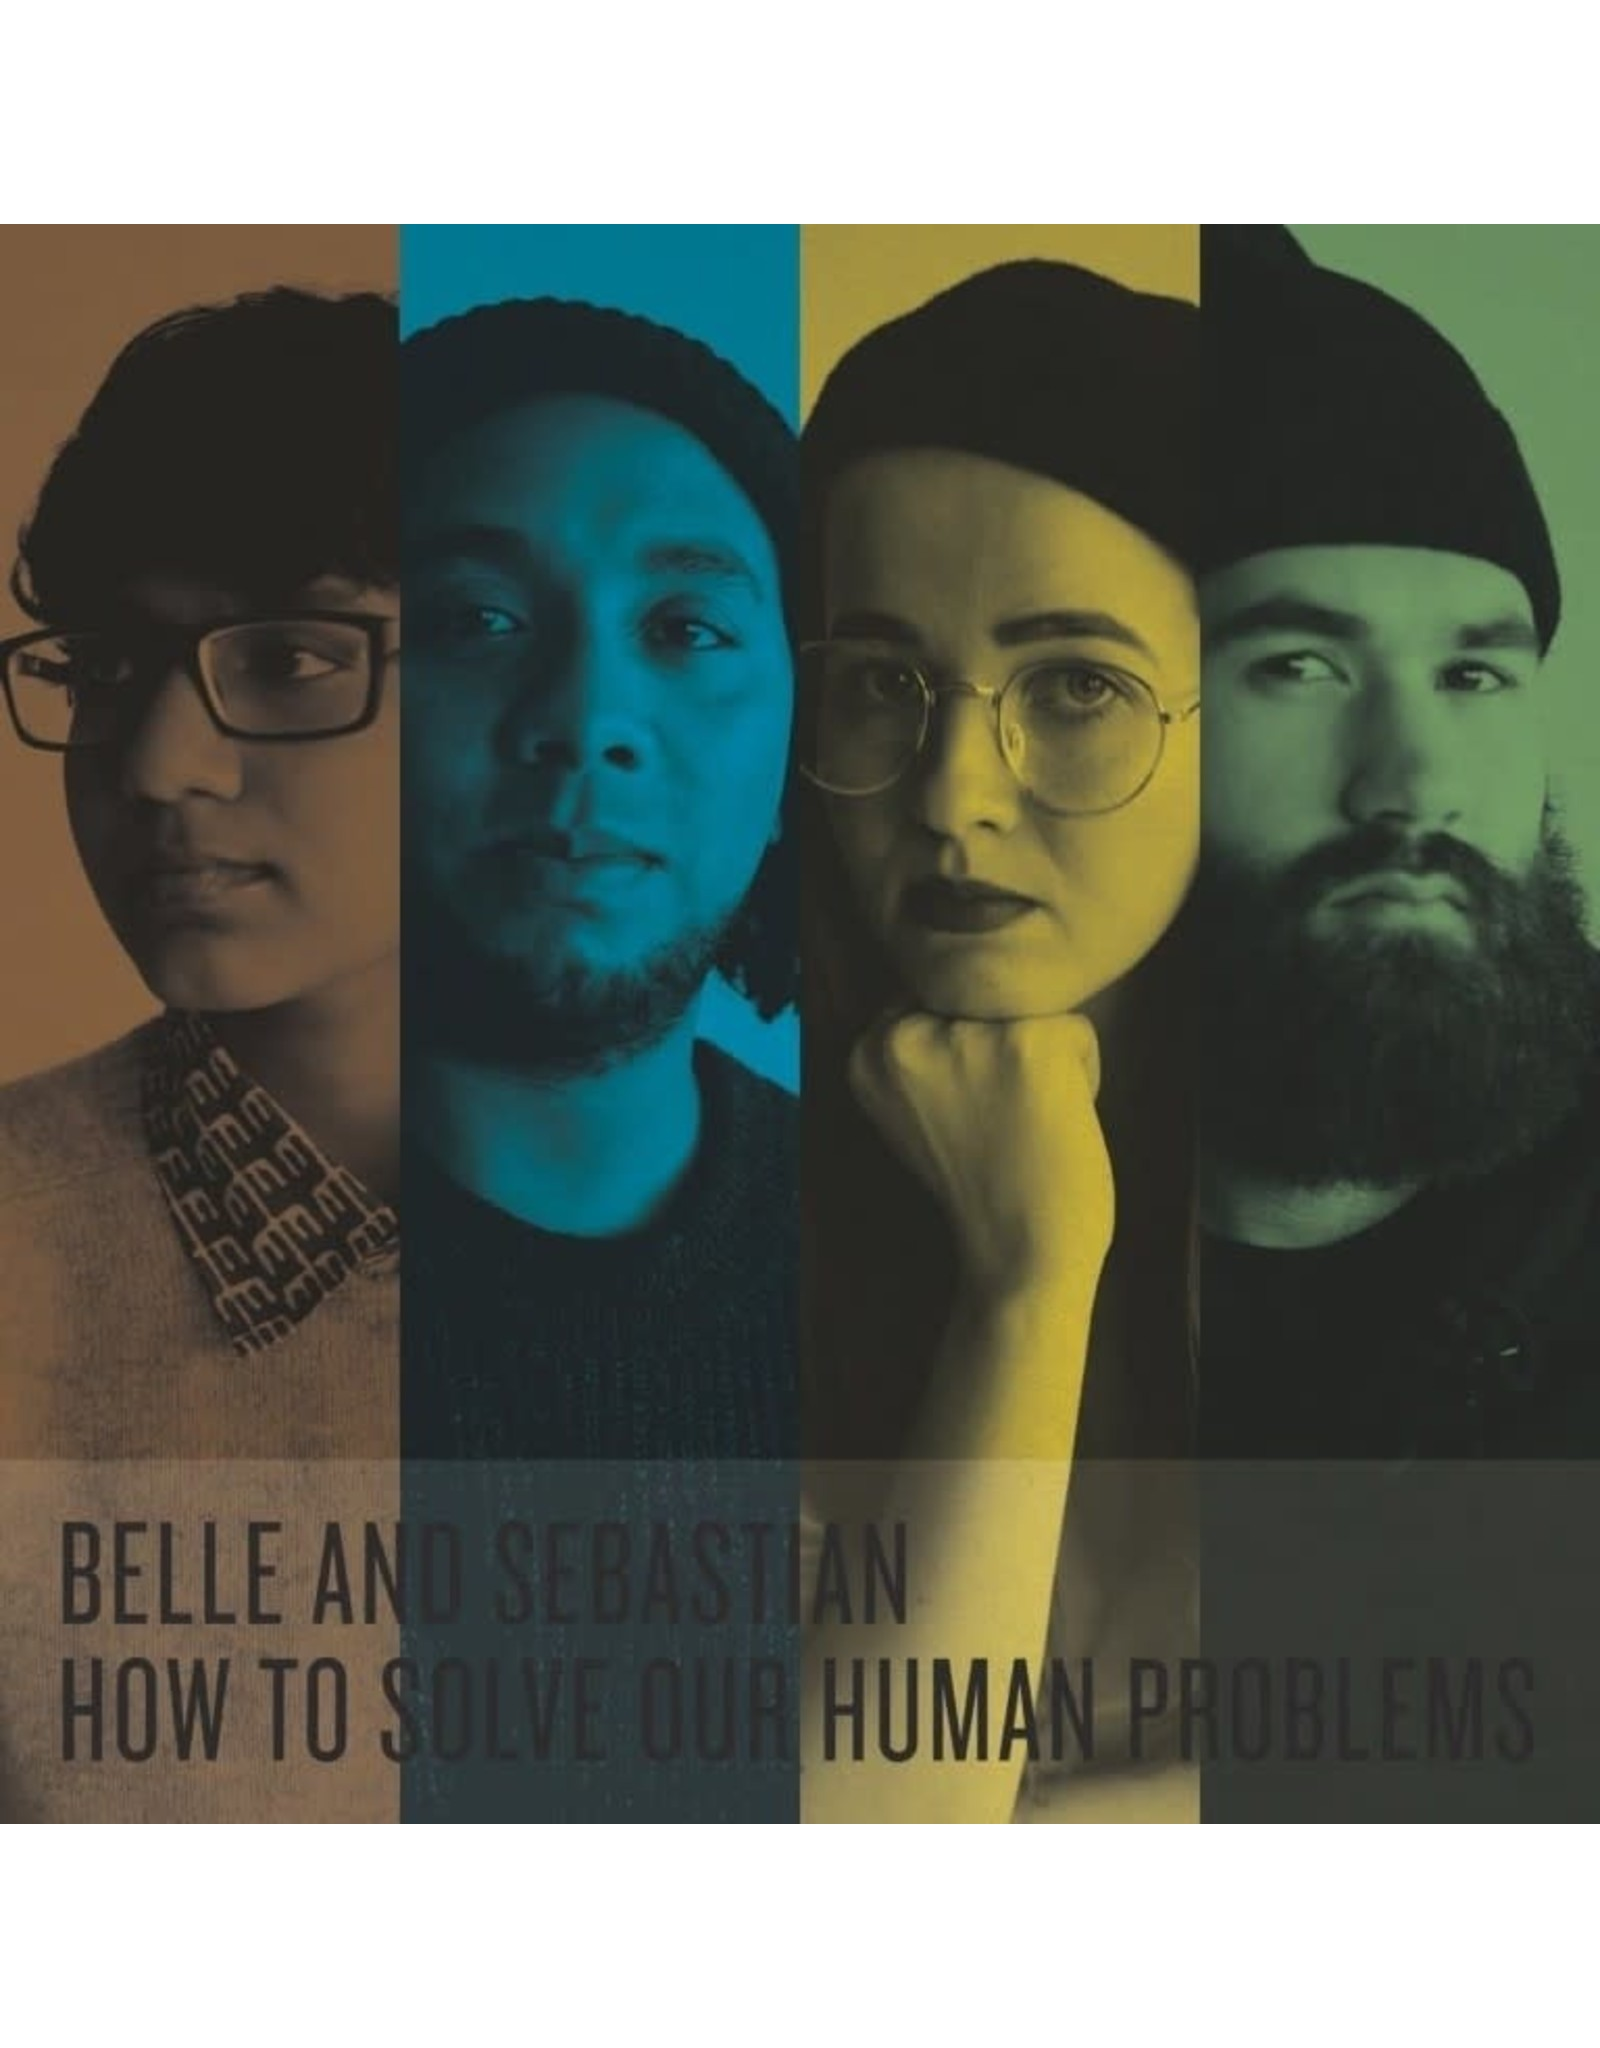 Belle and Sebastian - How to Solve Our Human Problems (3 EP Boxset) LP